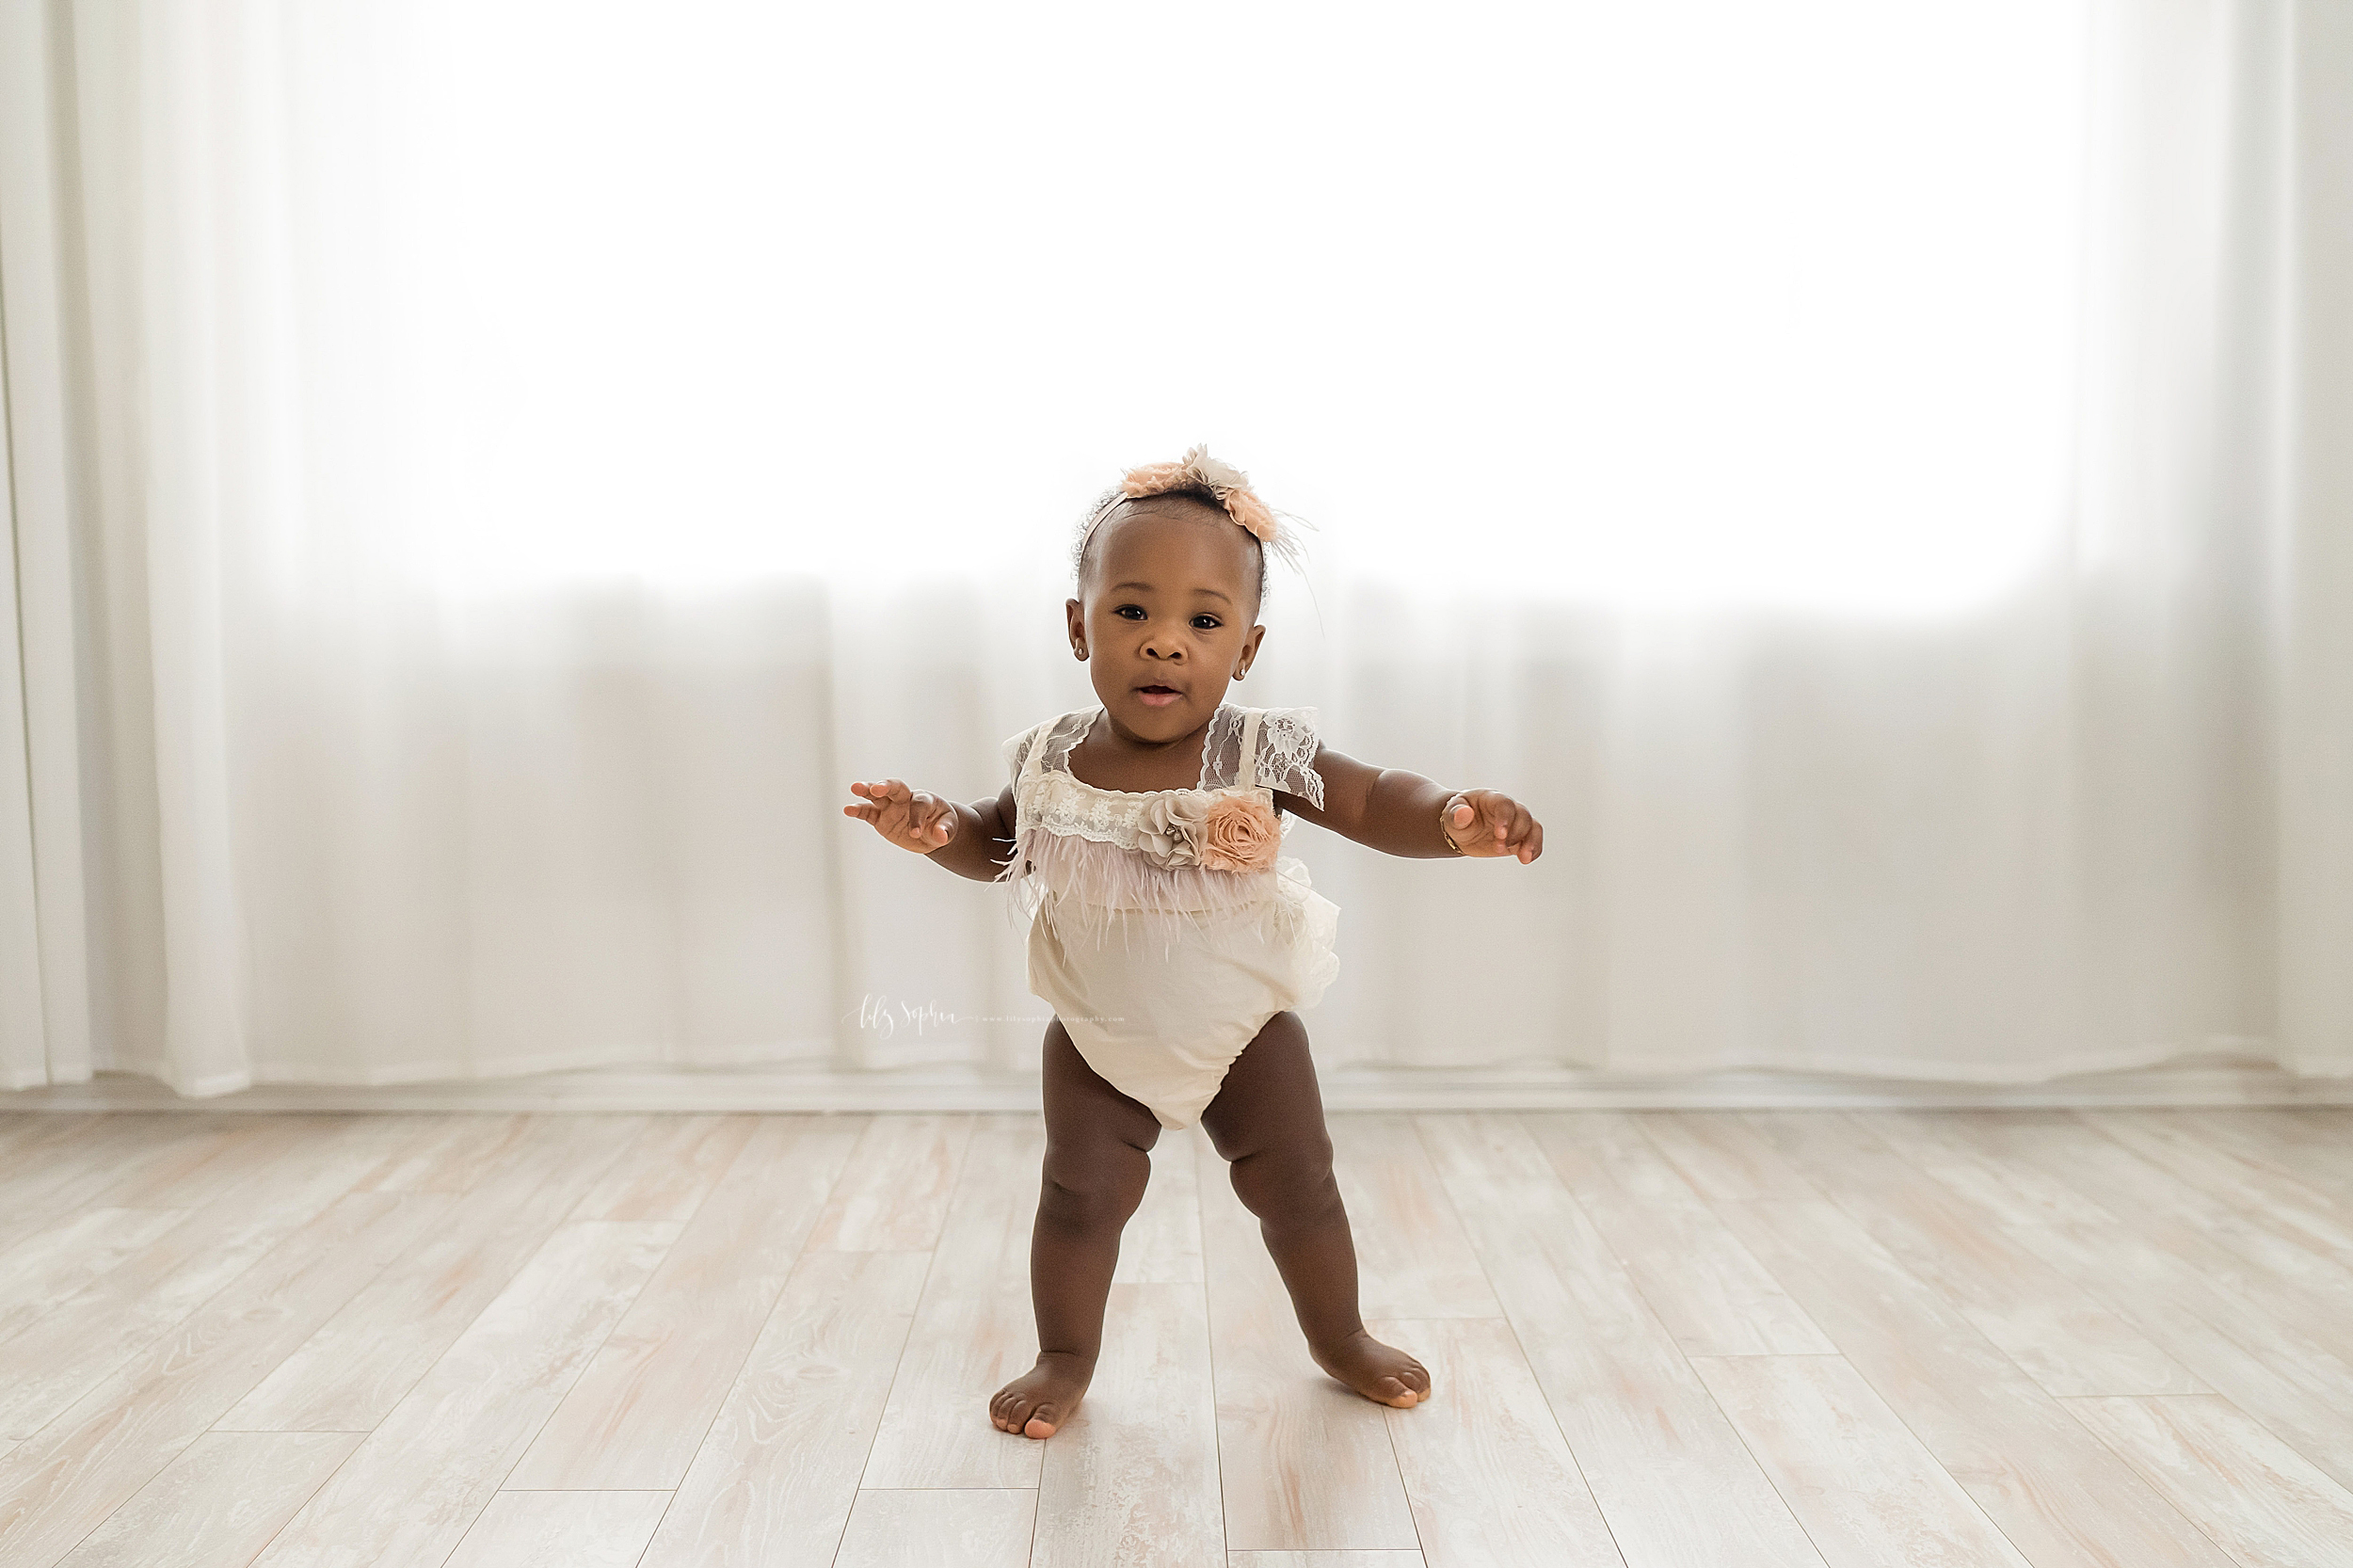 Milestone photo of an African-American one year old girl as she stands barefoot wearing a one piece cream outfit with lace, roses, and fringe and holds out her arms to help her balance in an Atlanta studio.